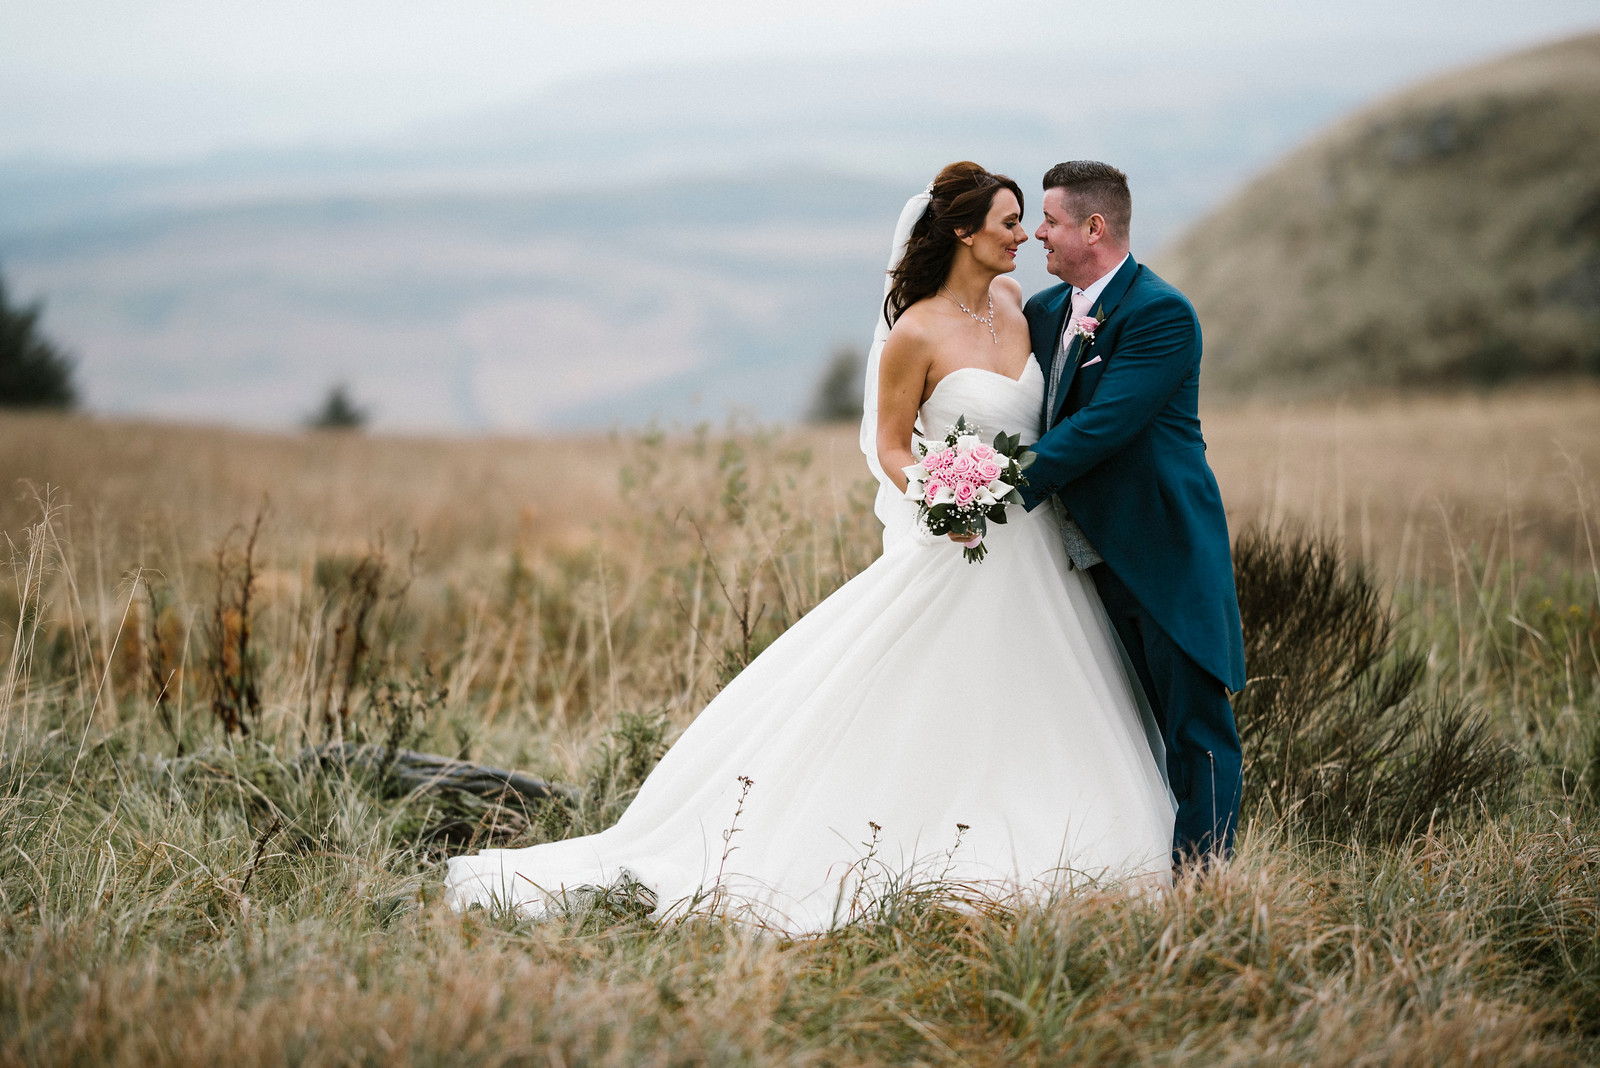 Bride and Groom Full of Smiles Wedding Photo - Countryside Location